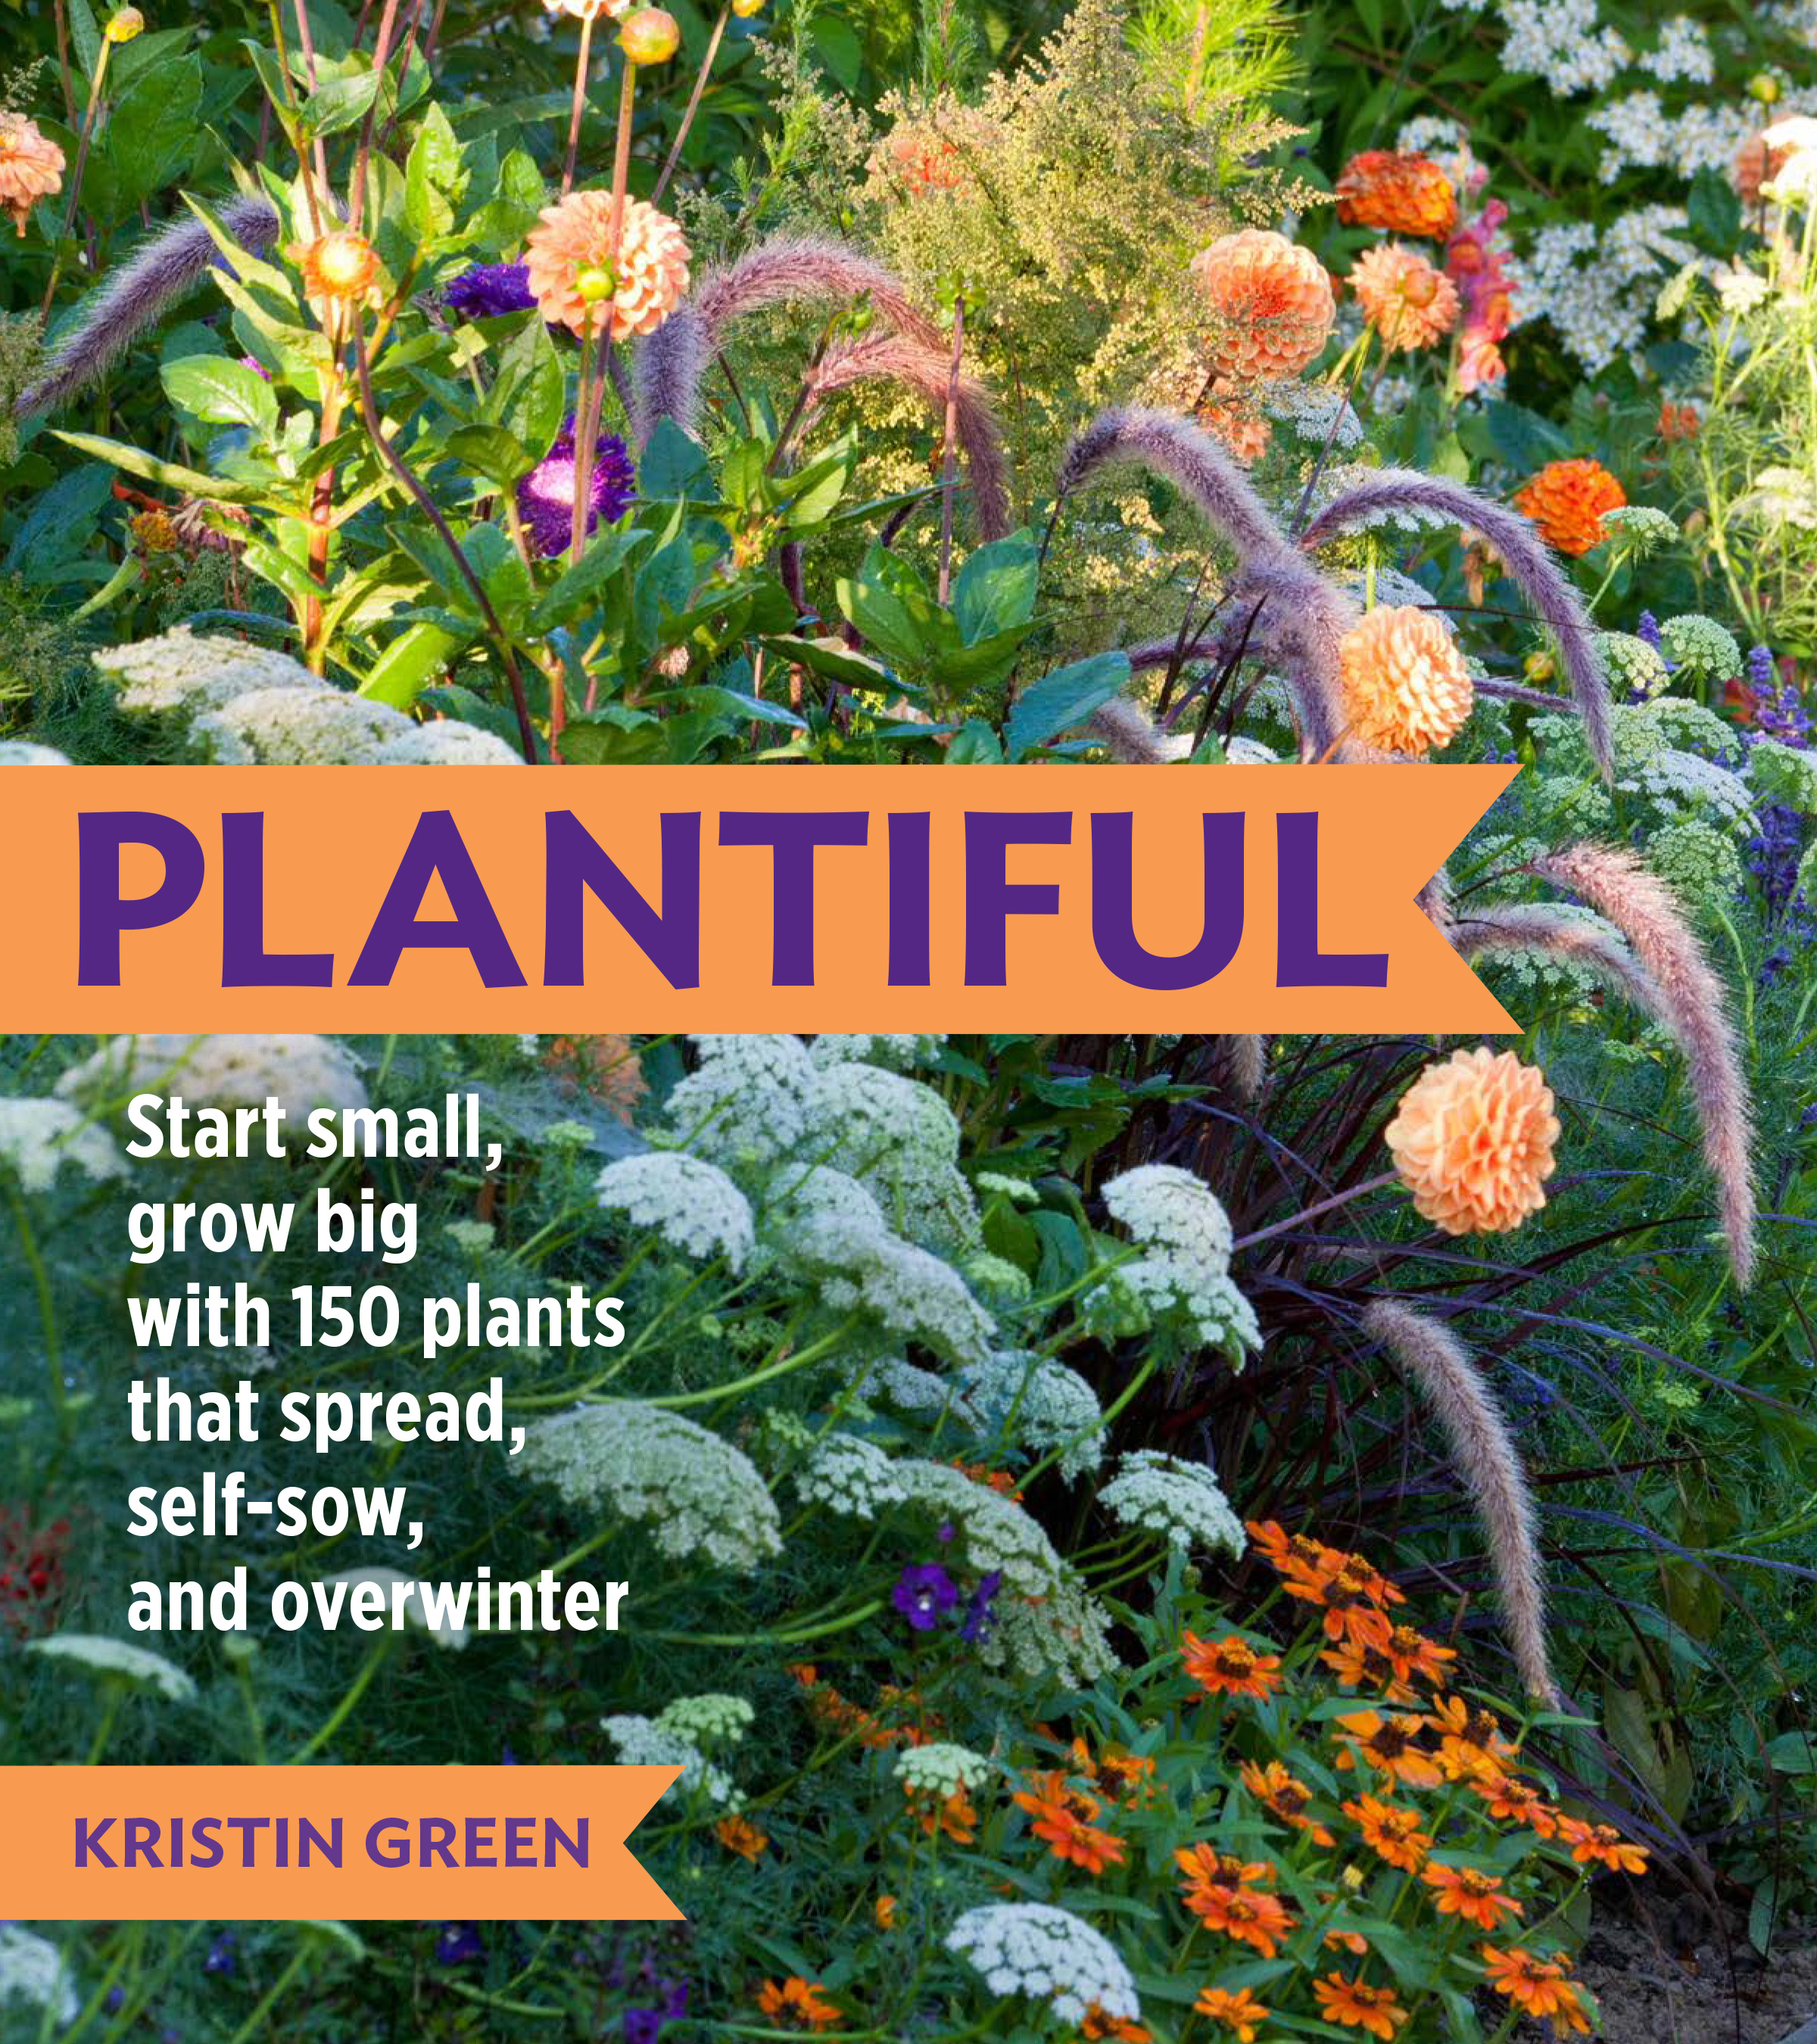 Plantiful start small, grow big with 150 plants that spread, self-sow, and overwinter